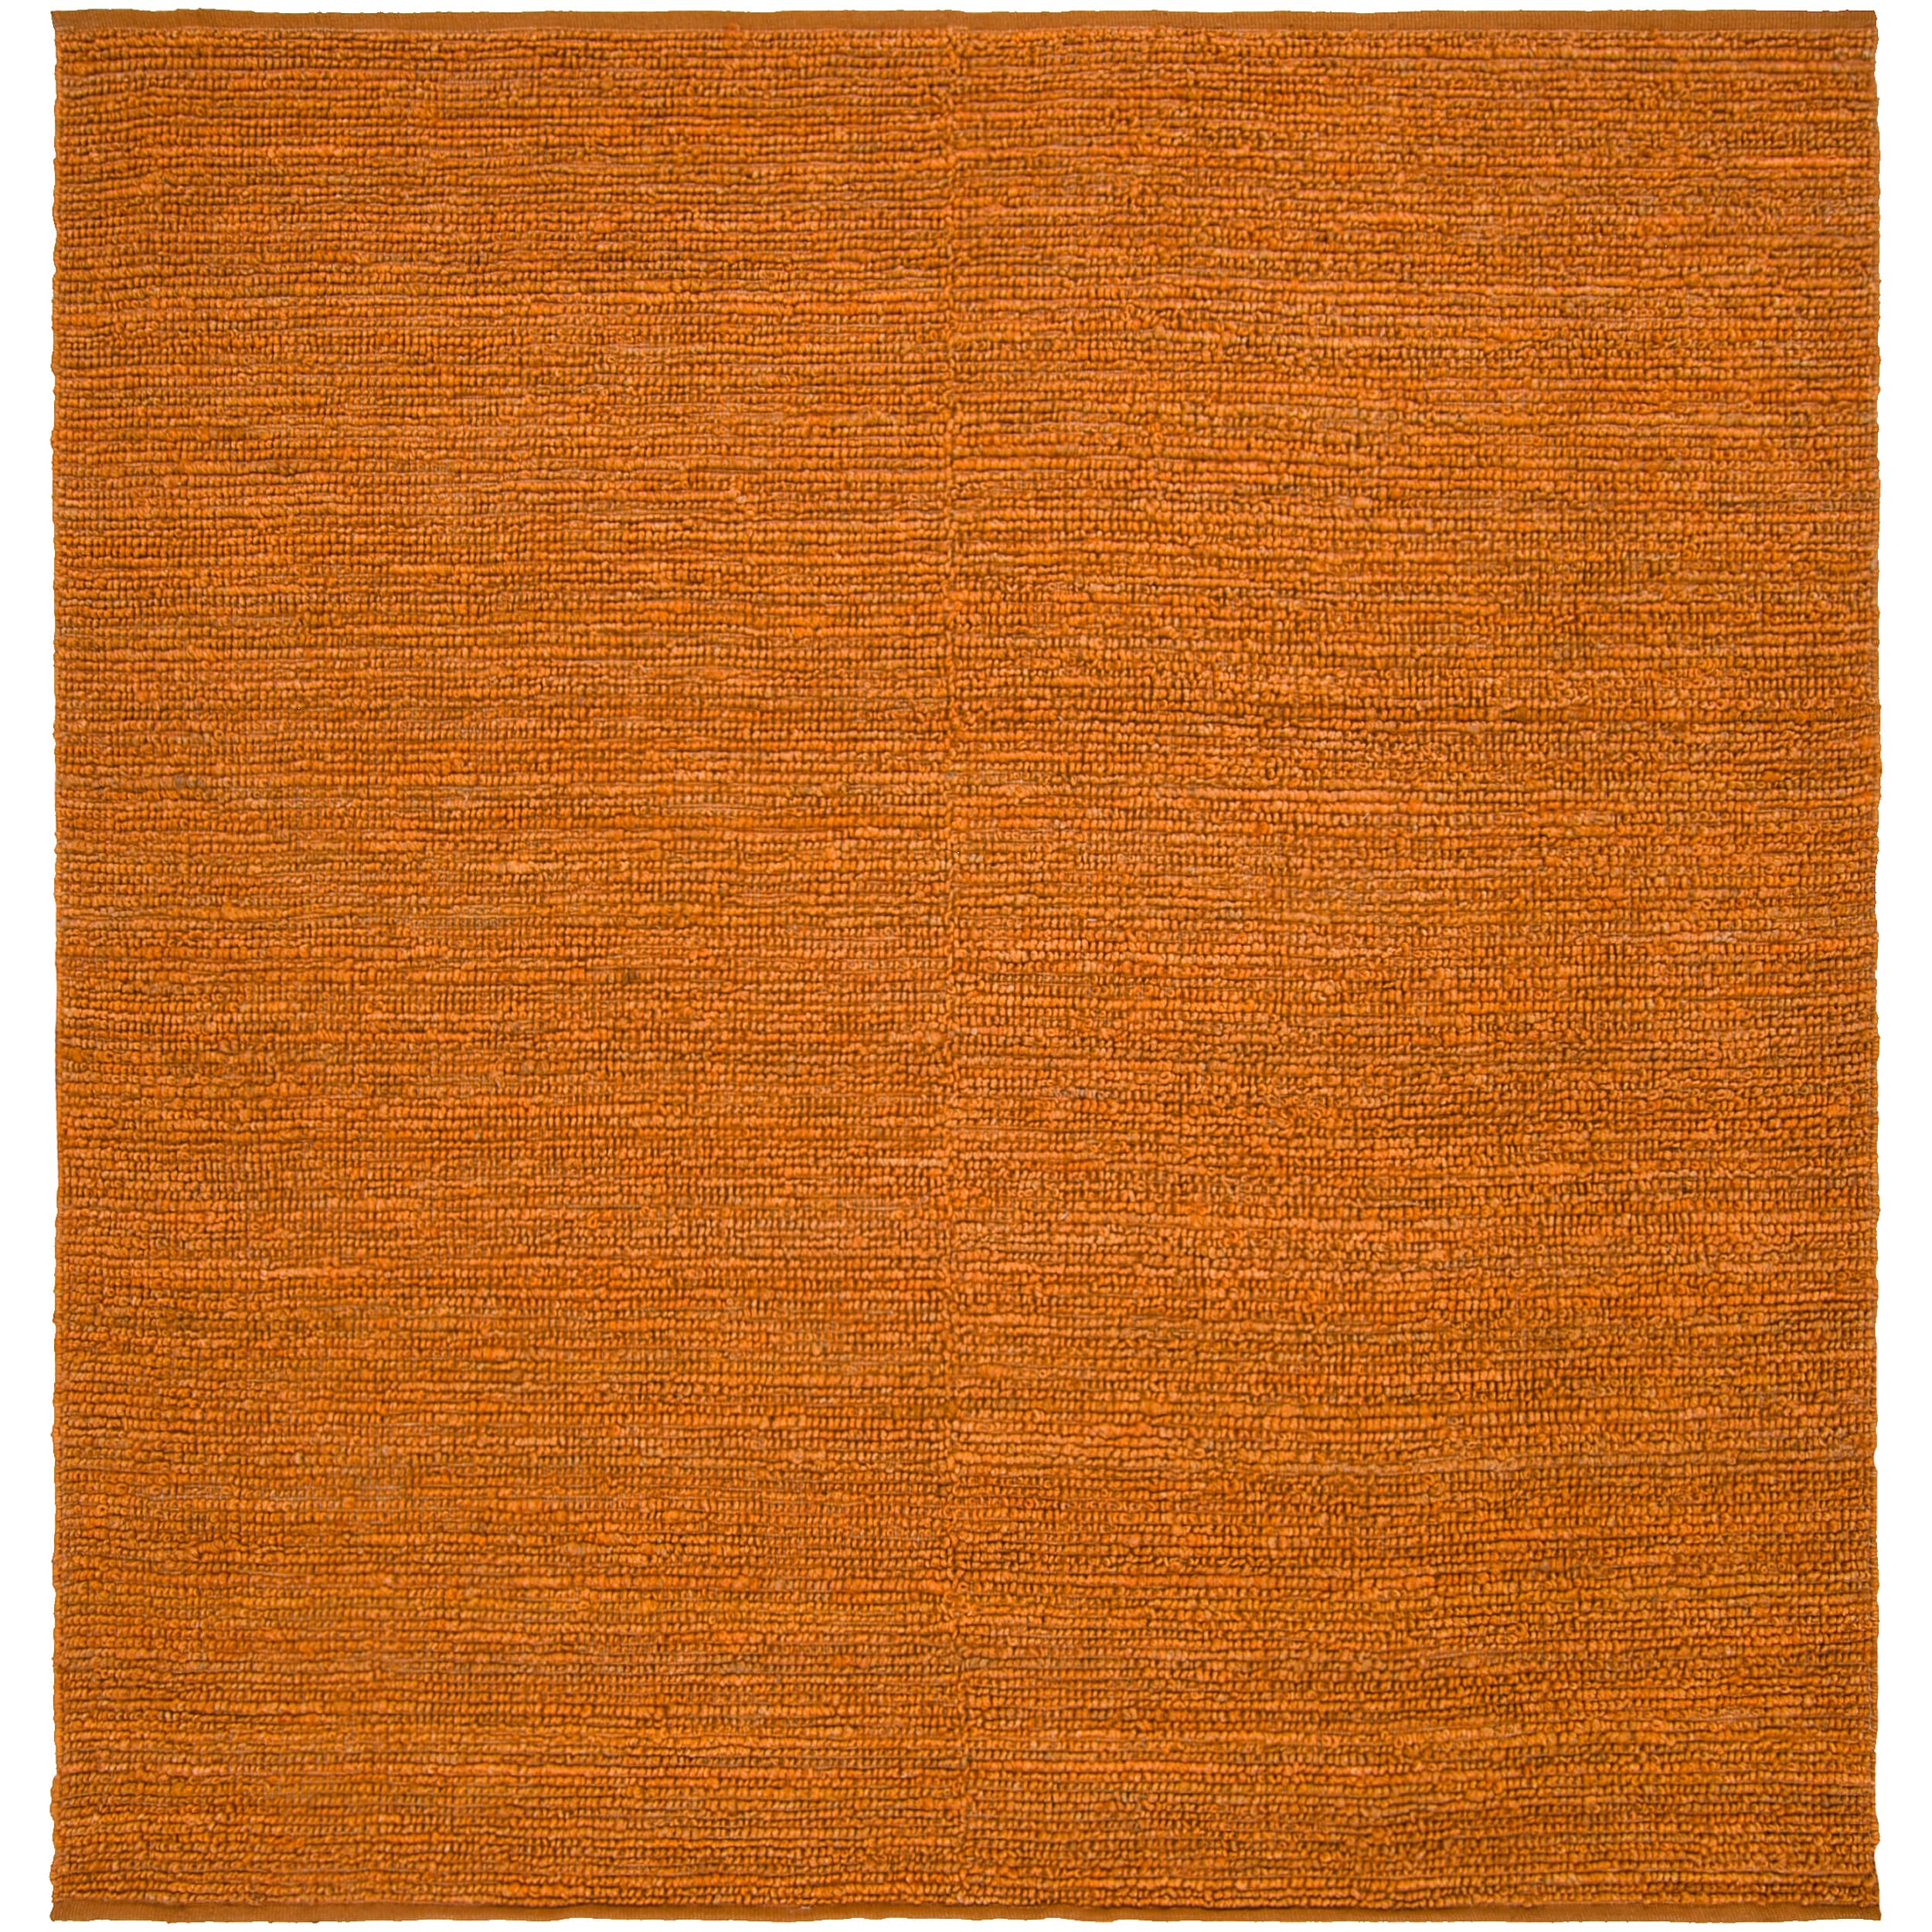 Hand-woven Orange Scorpione Natural Fiber Jute Rug (8' Square)